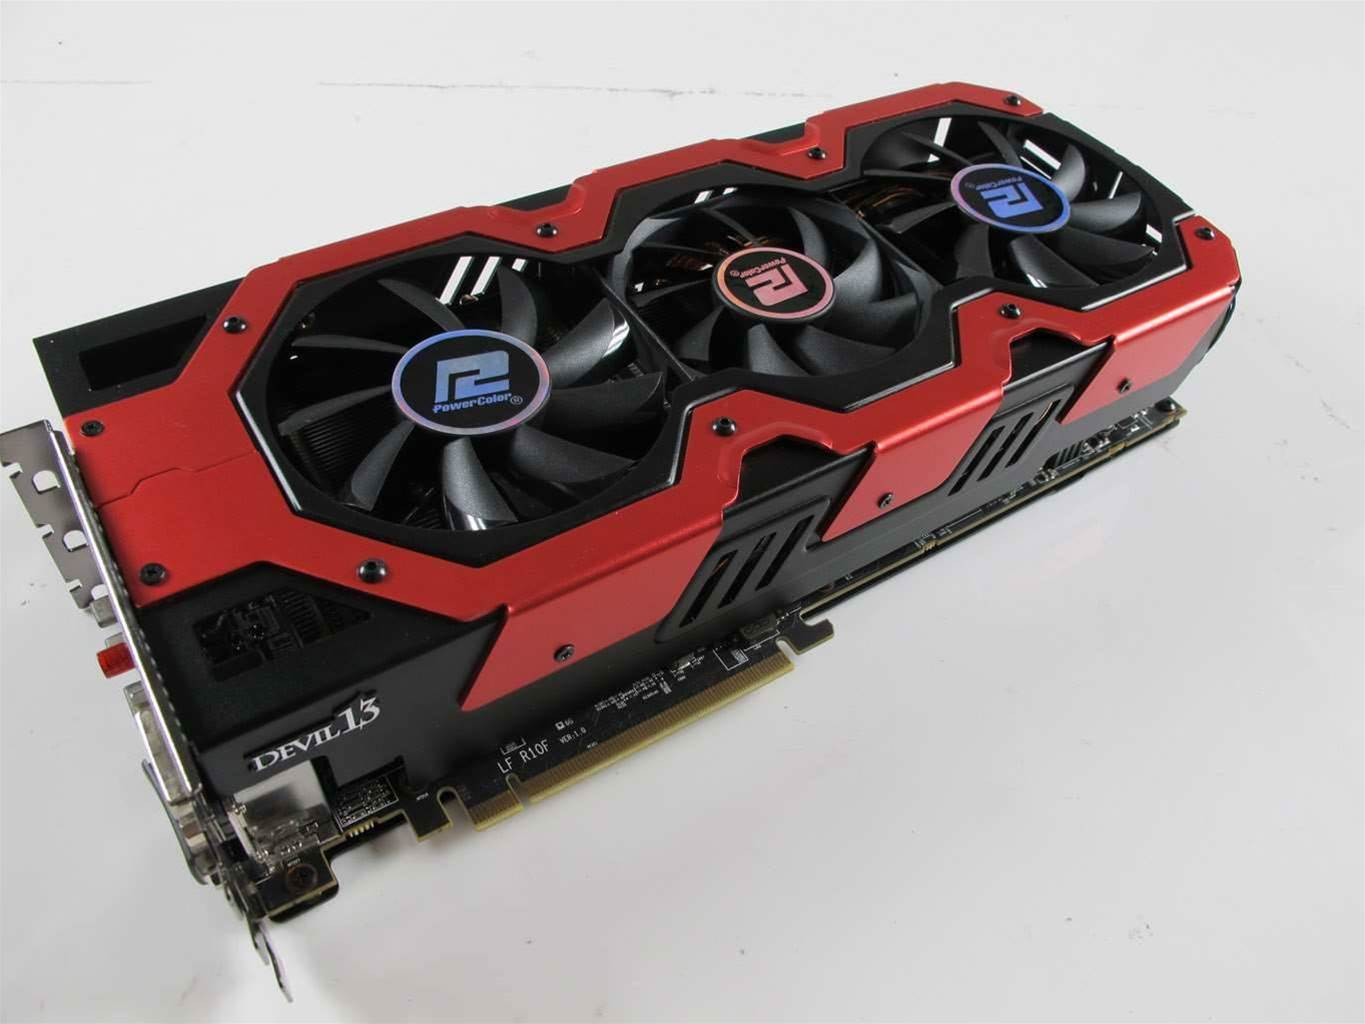 Powercolor HD 7990 Devil 13 review